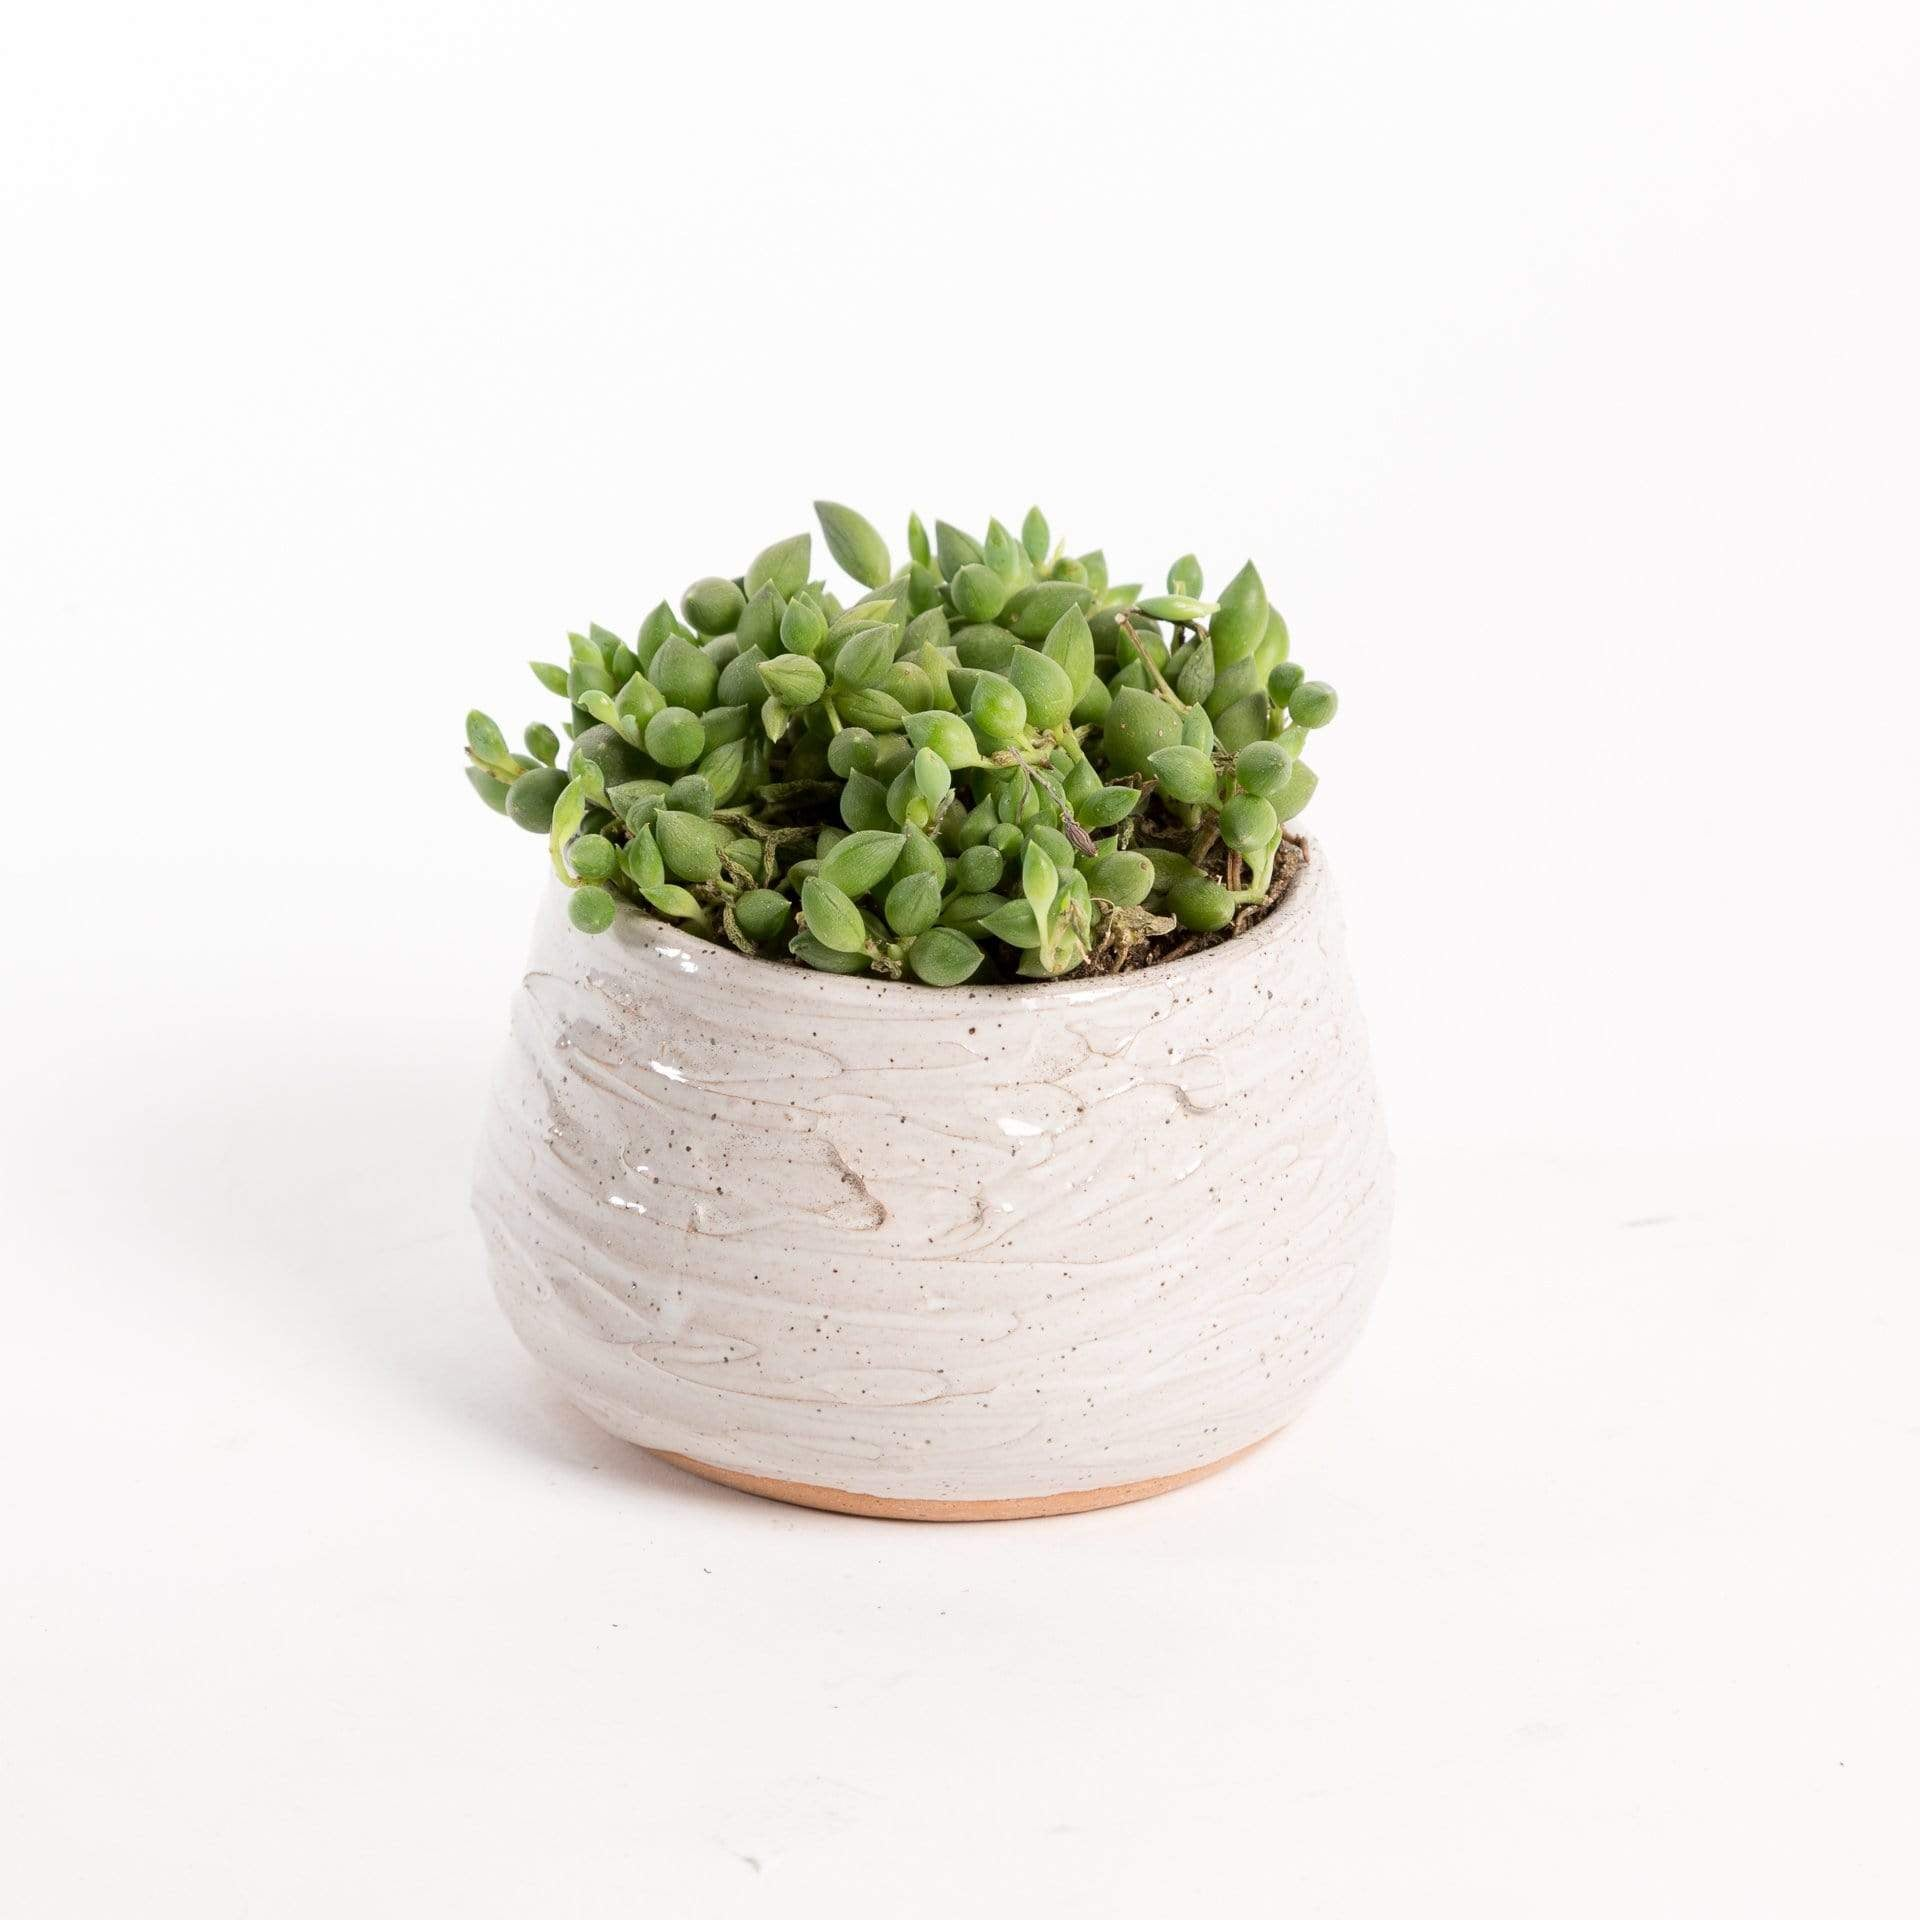 "Urban Sprouts Plant 4"" in nursery pot Succulent 'String Of Raindrops'"